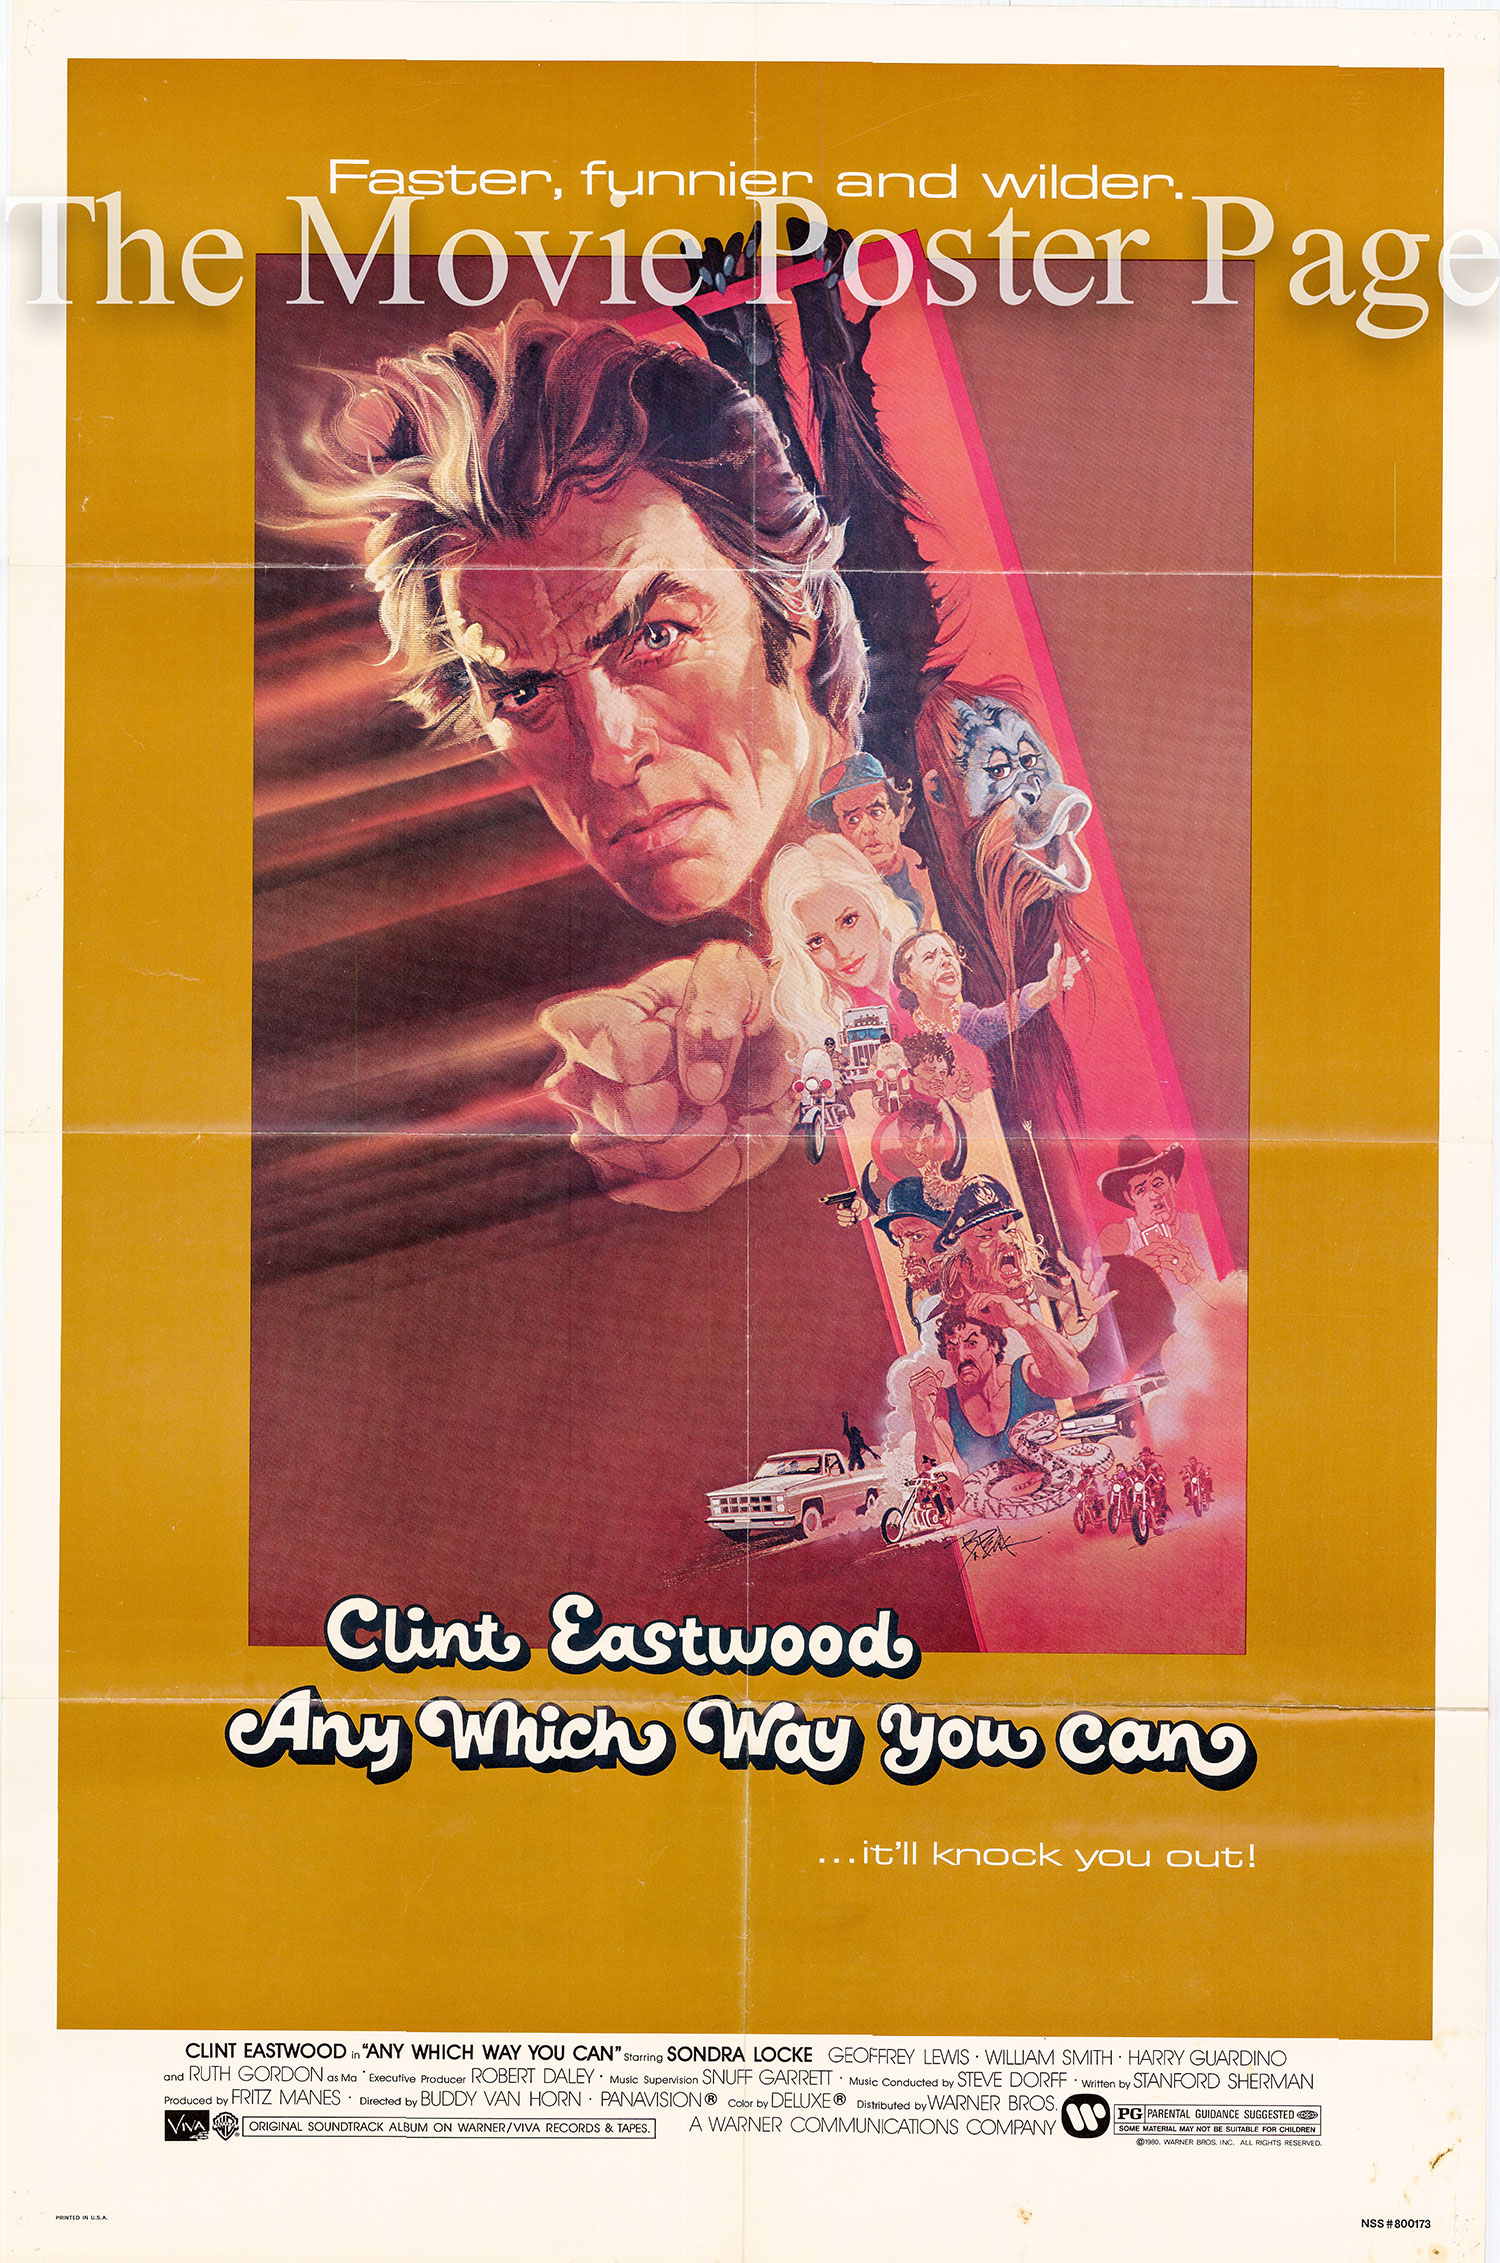 Pictured is a US one-sheet for the 1980 Buddy Van Horn film Any Which Way You Can starring Clint Eastwood.